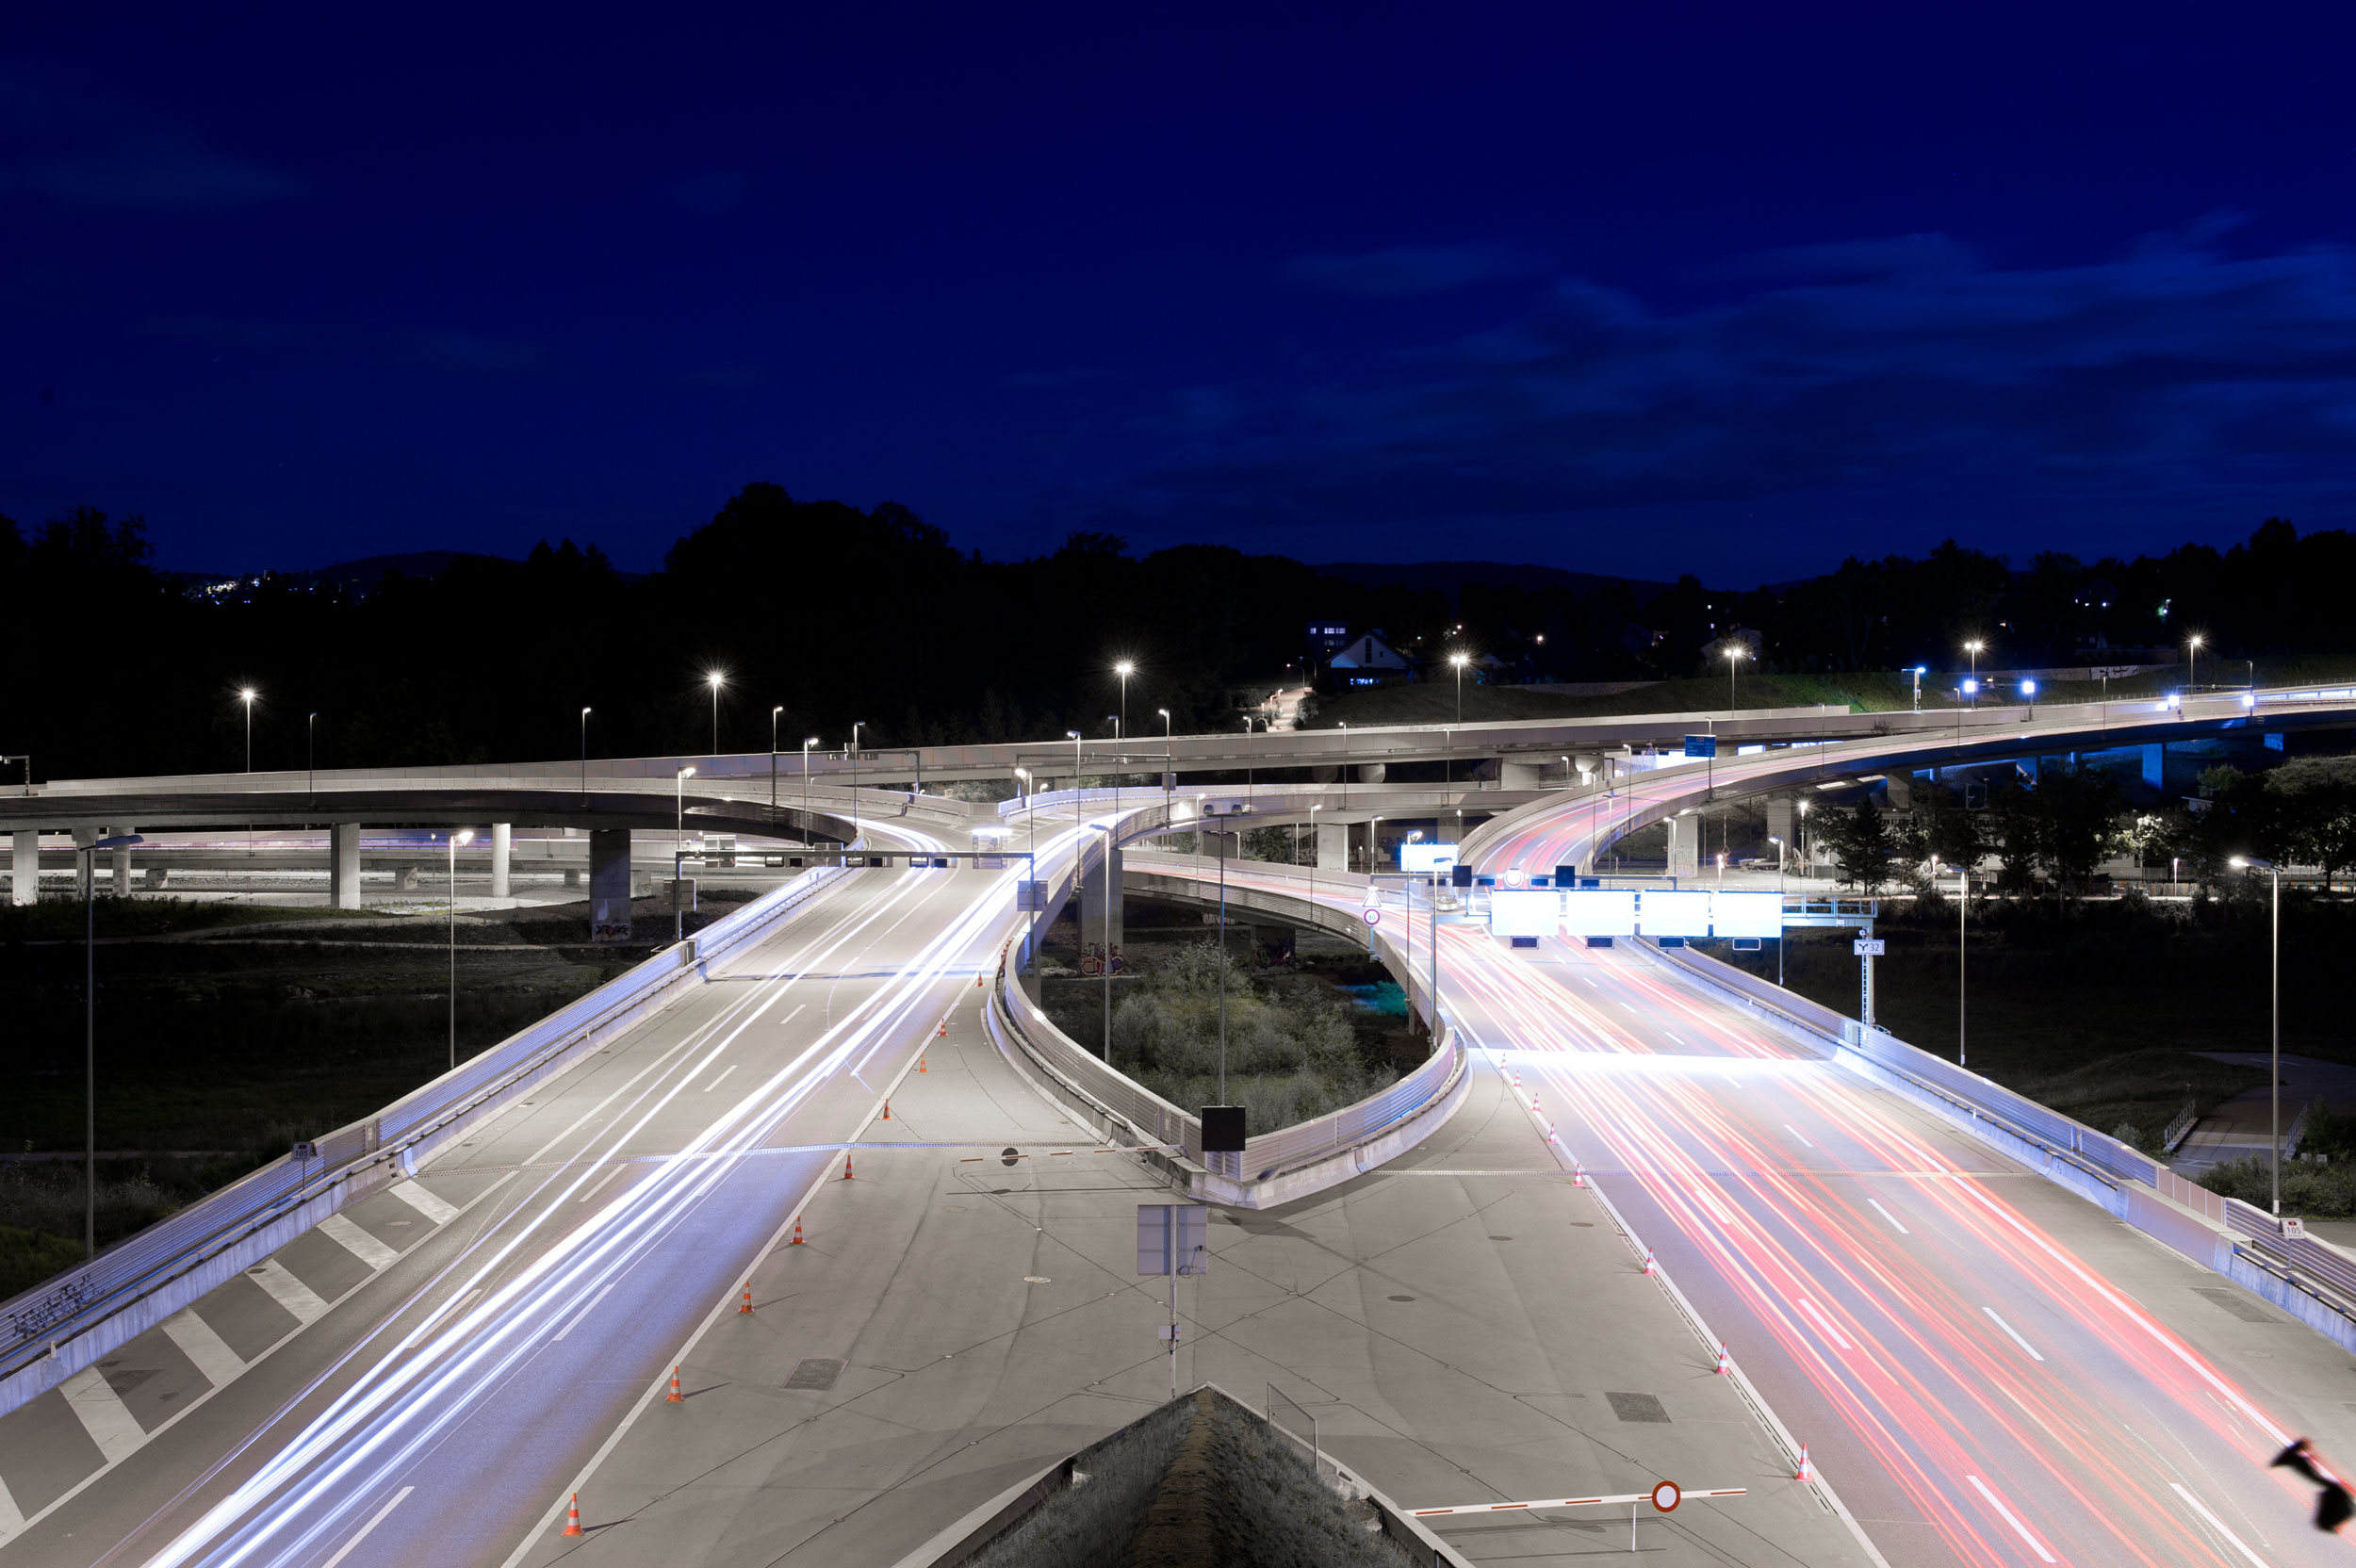 Highway at night, with lighttrails unretouched